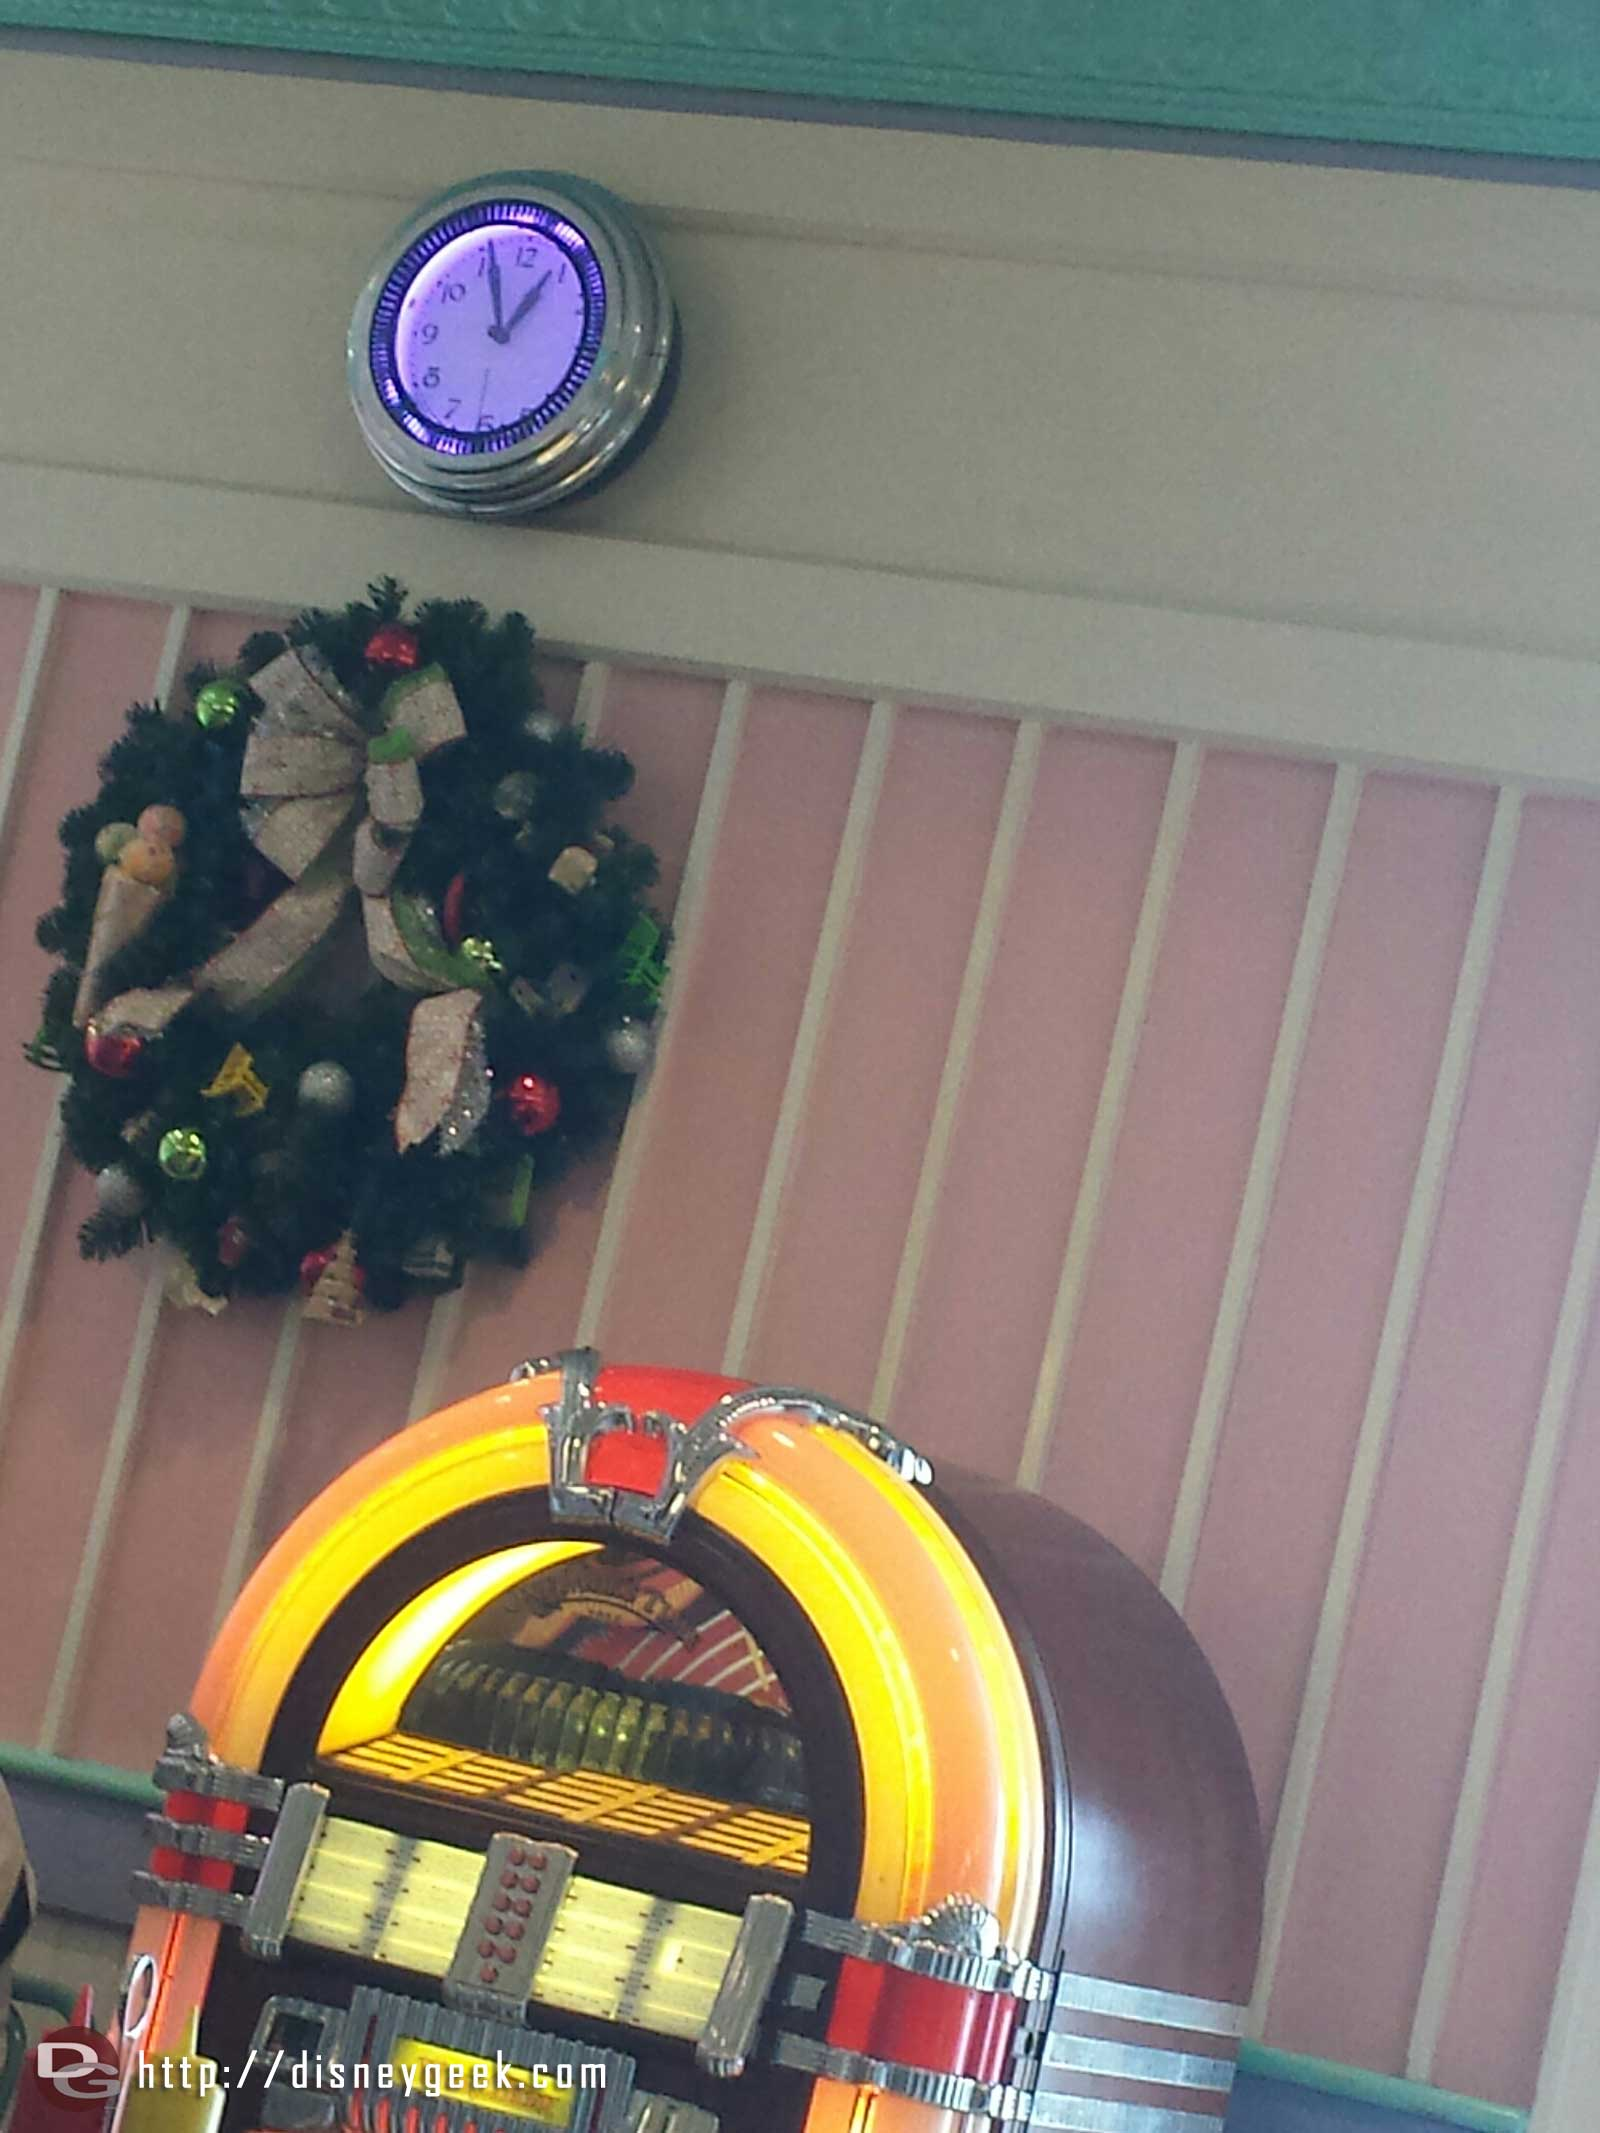 Lunch @ Beaches & Cream today, a wreath near the jukebox #WDW